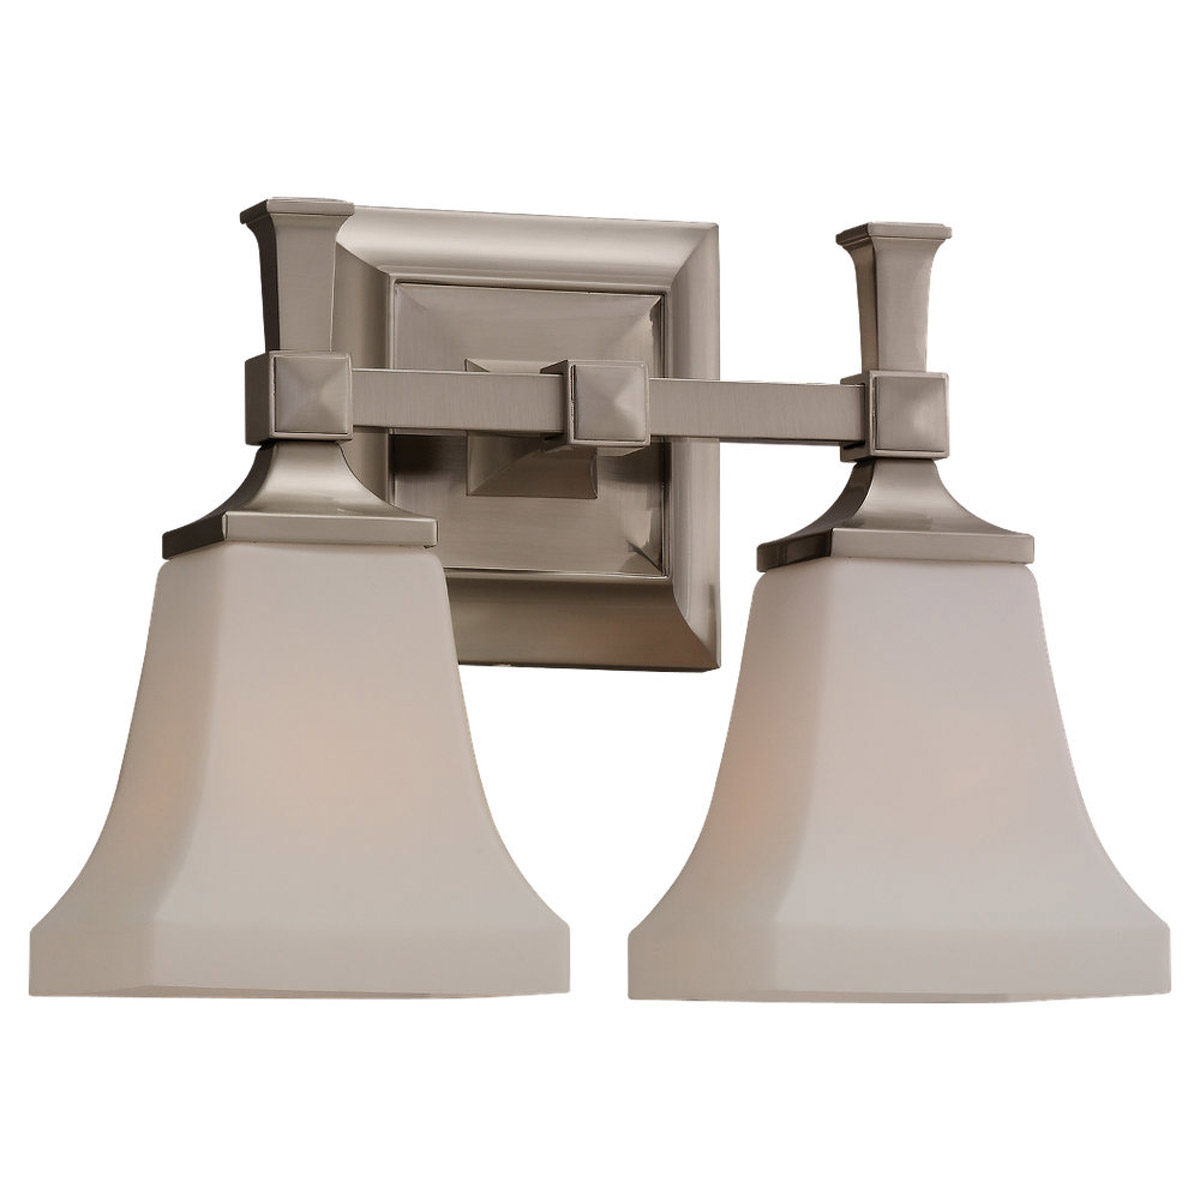 Sea Gull Lighting Melody 2 Light Bath Vanity in Brushed Nickel 44706-962 photo